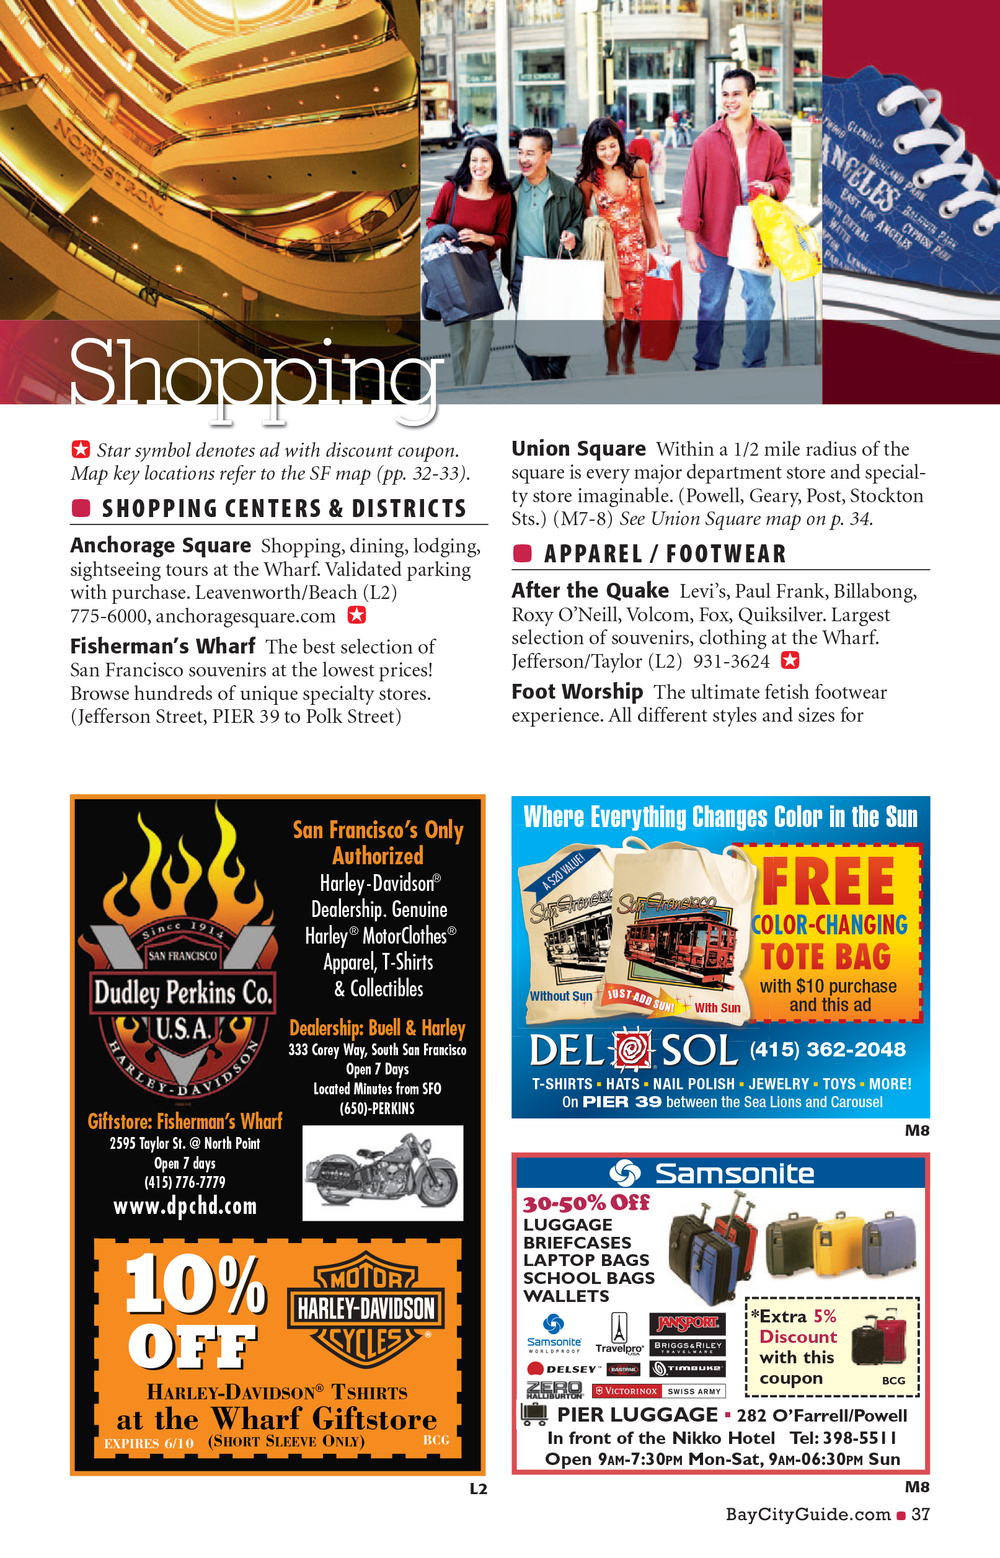 Bay City Guide magazine - Shopping